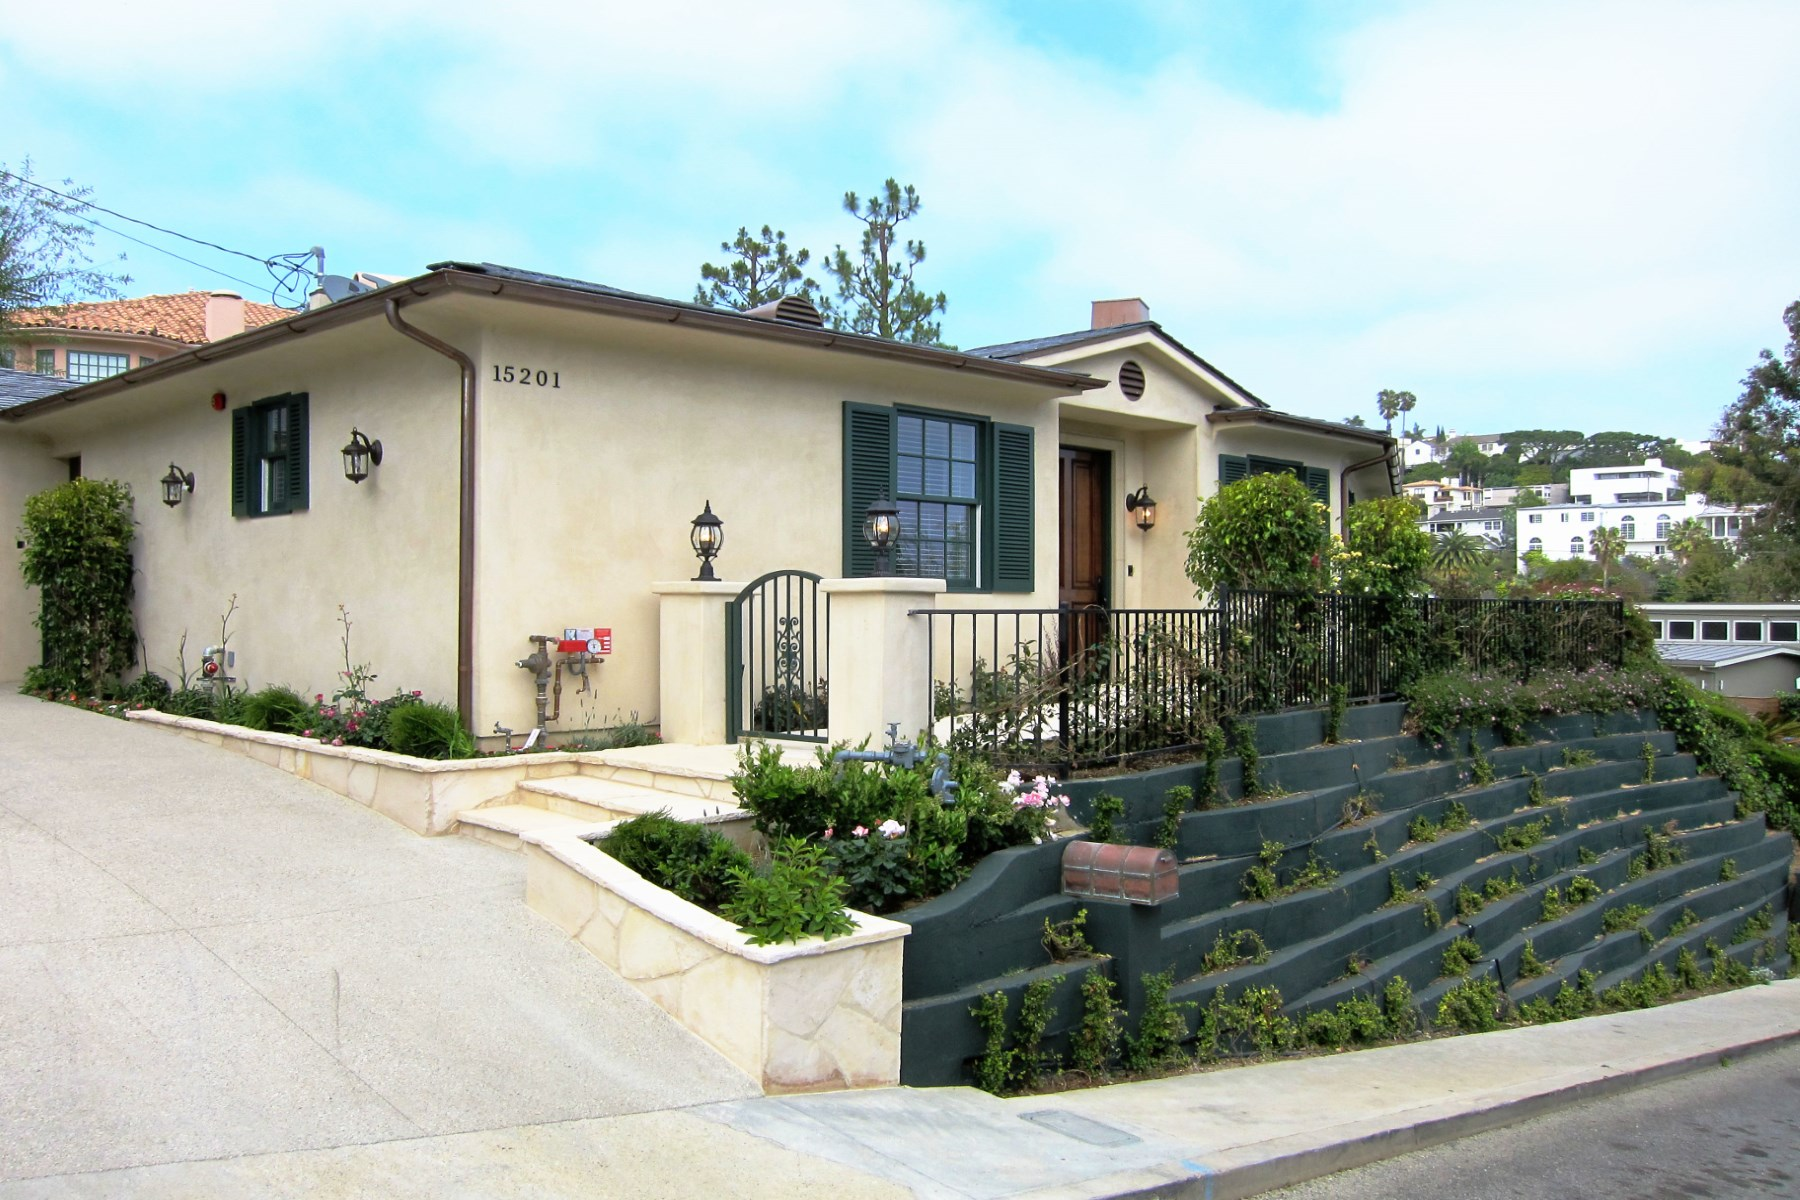 Single Family Home for Rent at 15201 Mckendree Avenue Pacific Palisades, California, 90272 United States